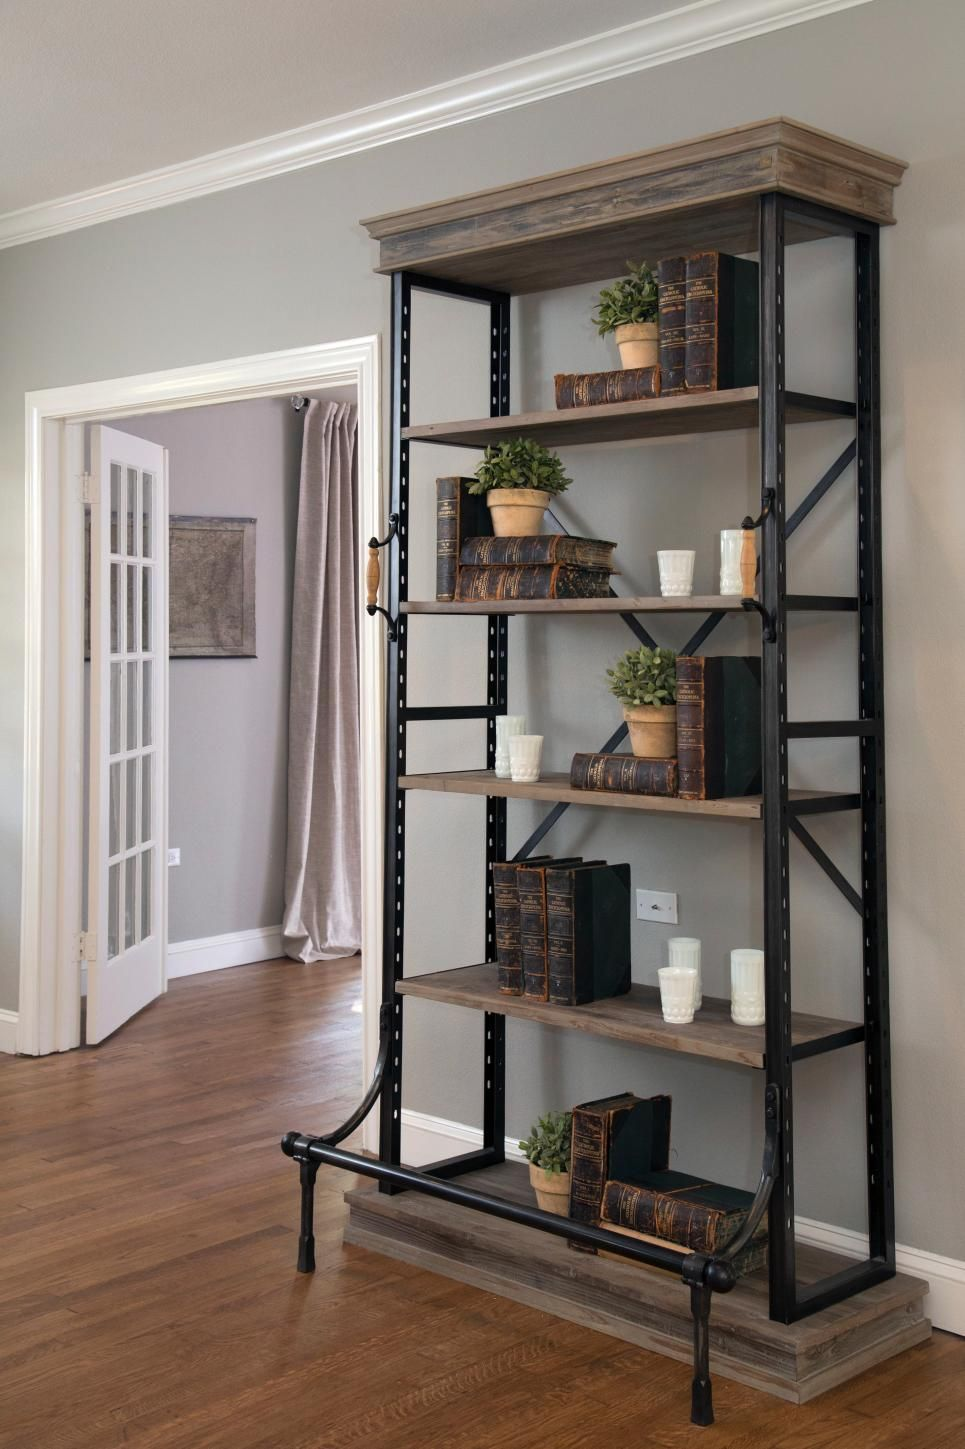 Decorating With Shiplap: Ideas From HGTV's Fixer Upper | Craftsman ...